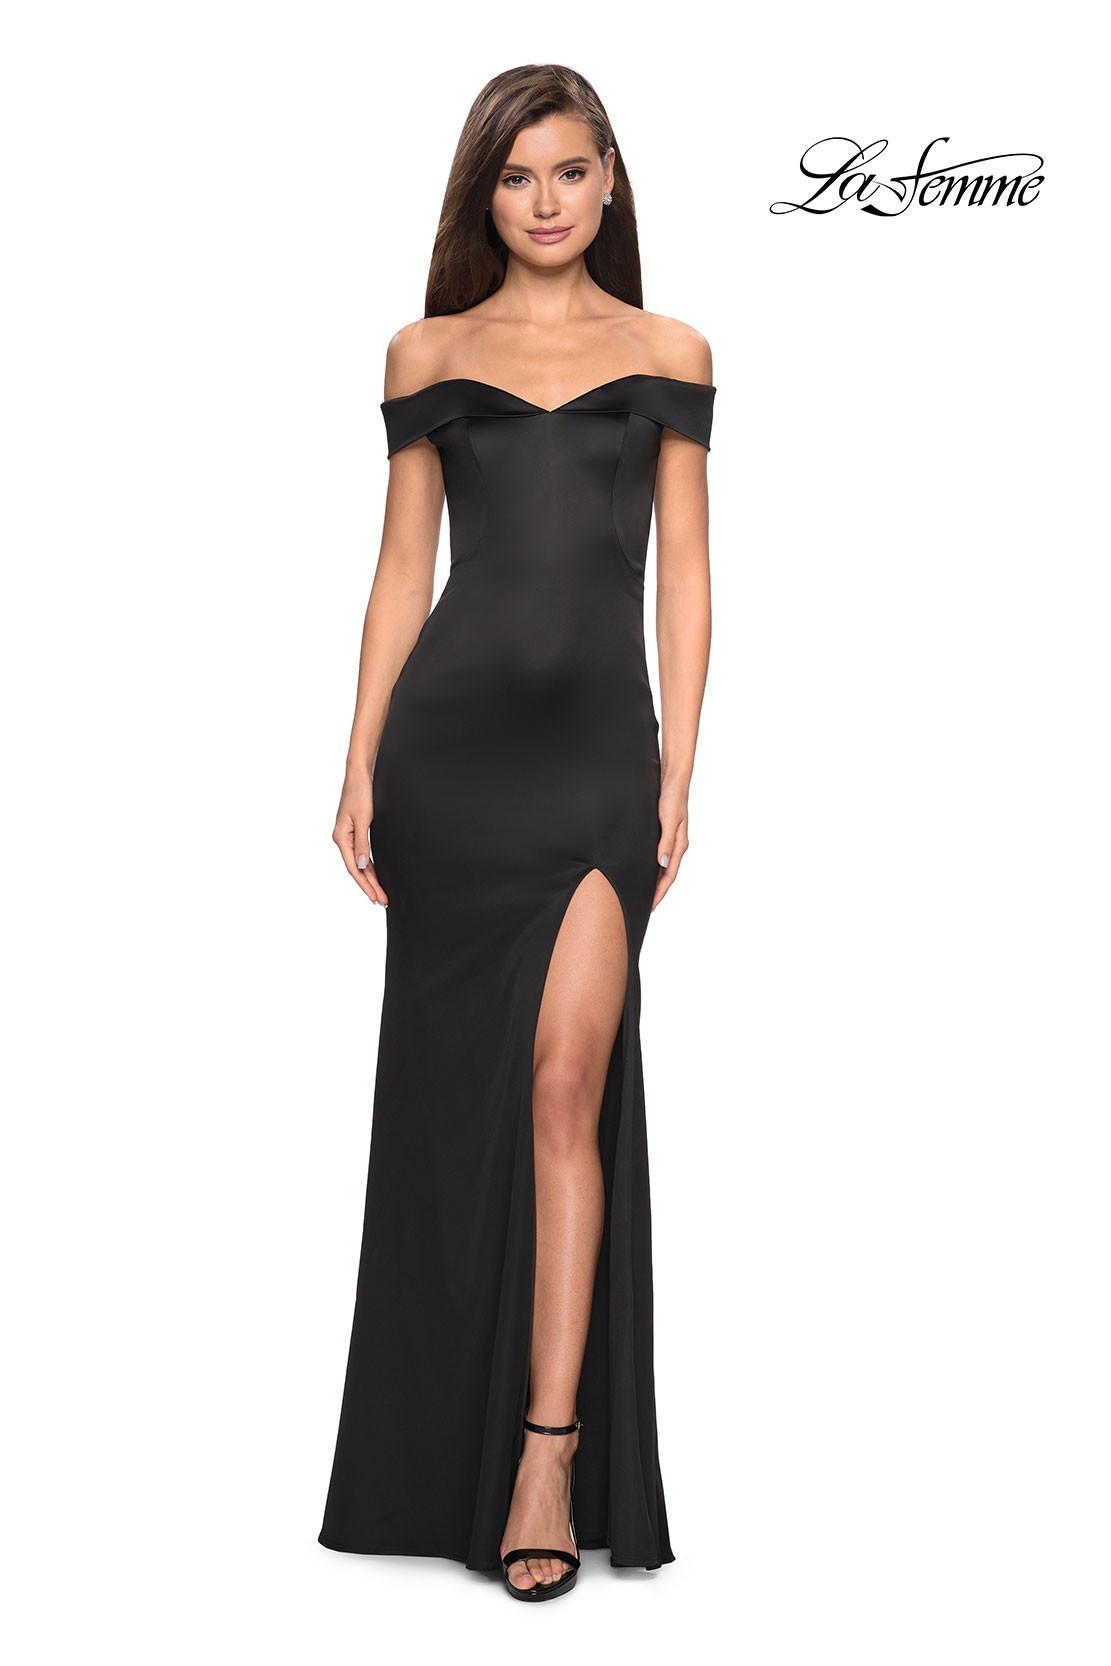 La Femme Off the Shoulder Dress